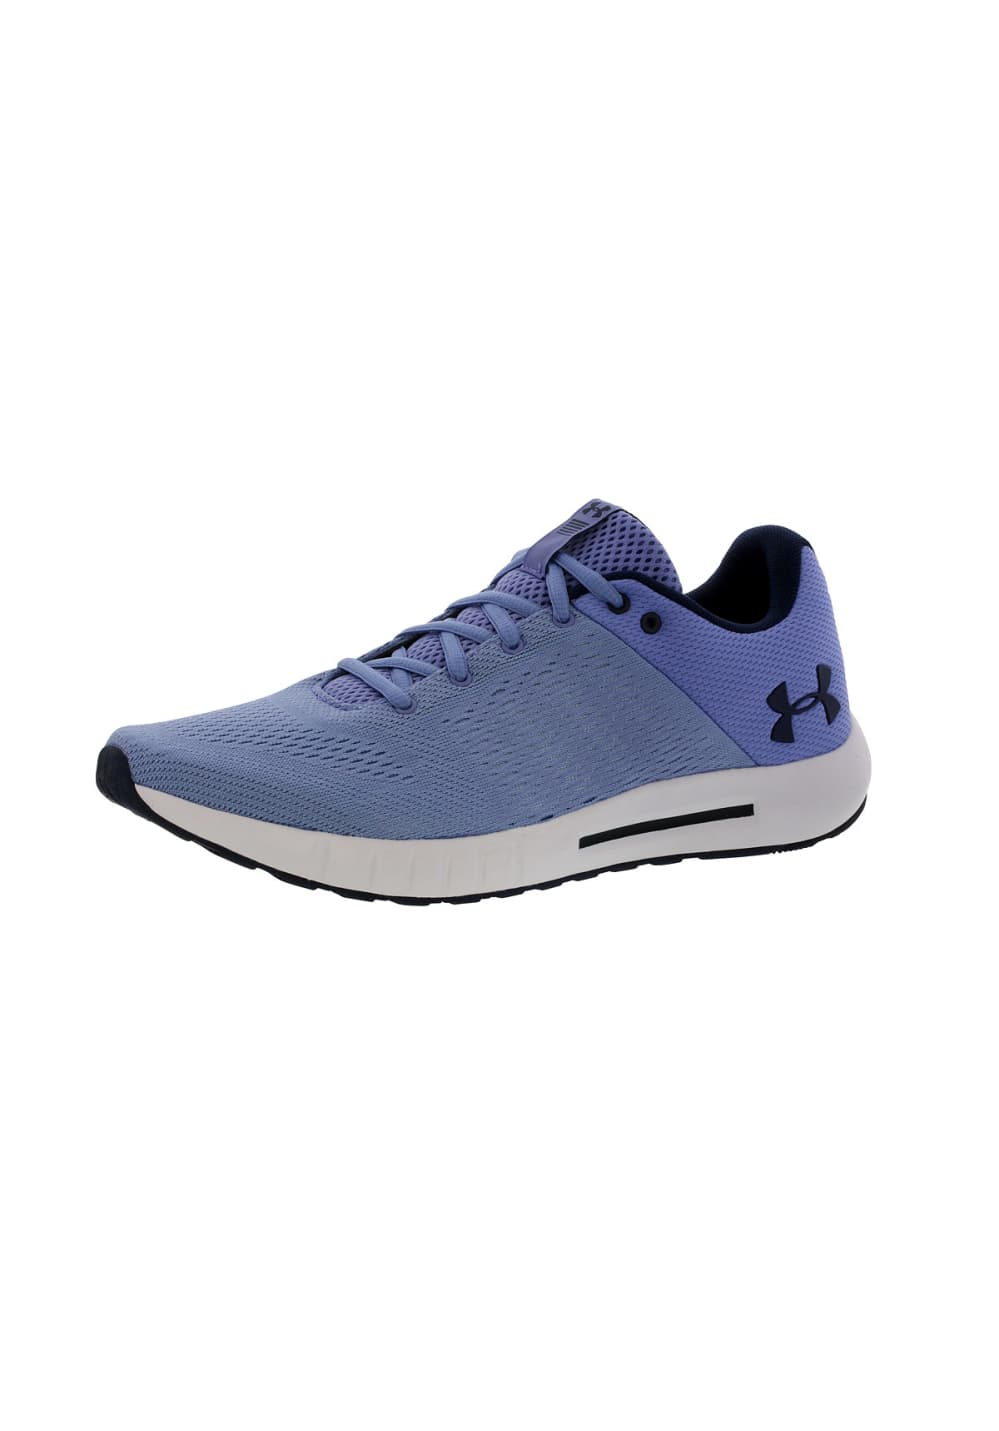 7d5d4acd96878 Under Armour Micro G Pursuit - Running shoes for Women - Purple